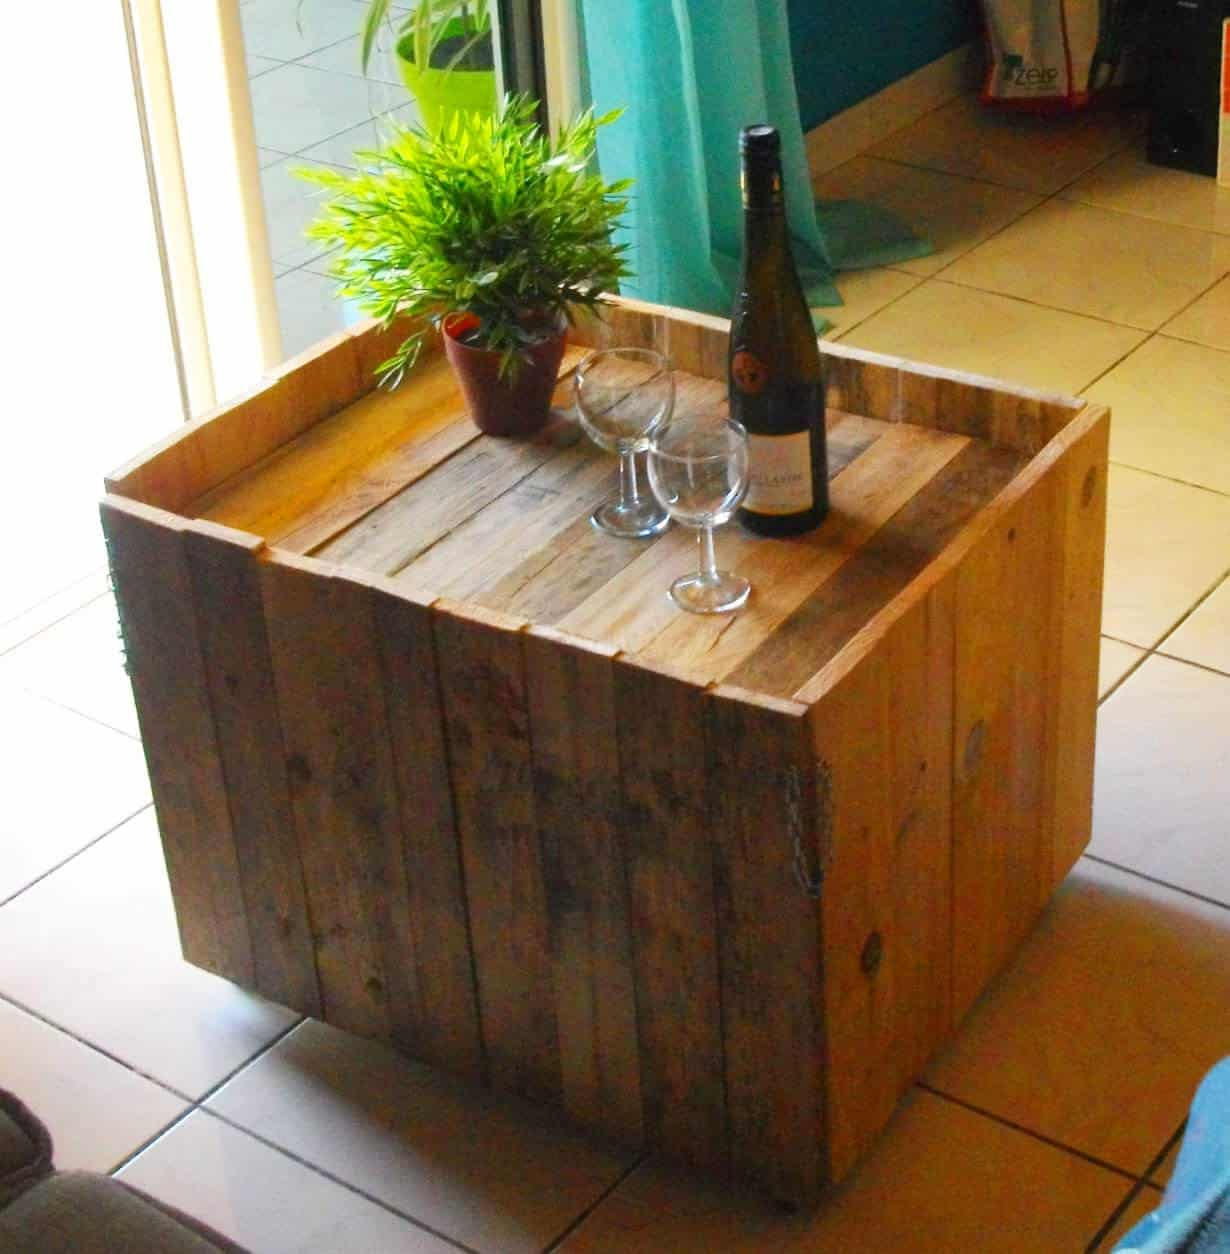 Diy pdf tutoriel table basse modulabe 1001 pallets gratuit - Table basse palette roulettes ...